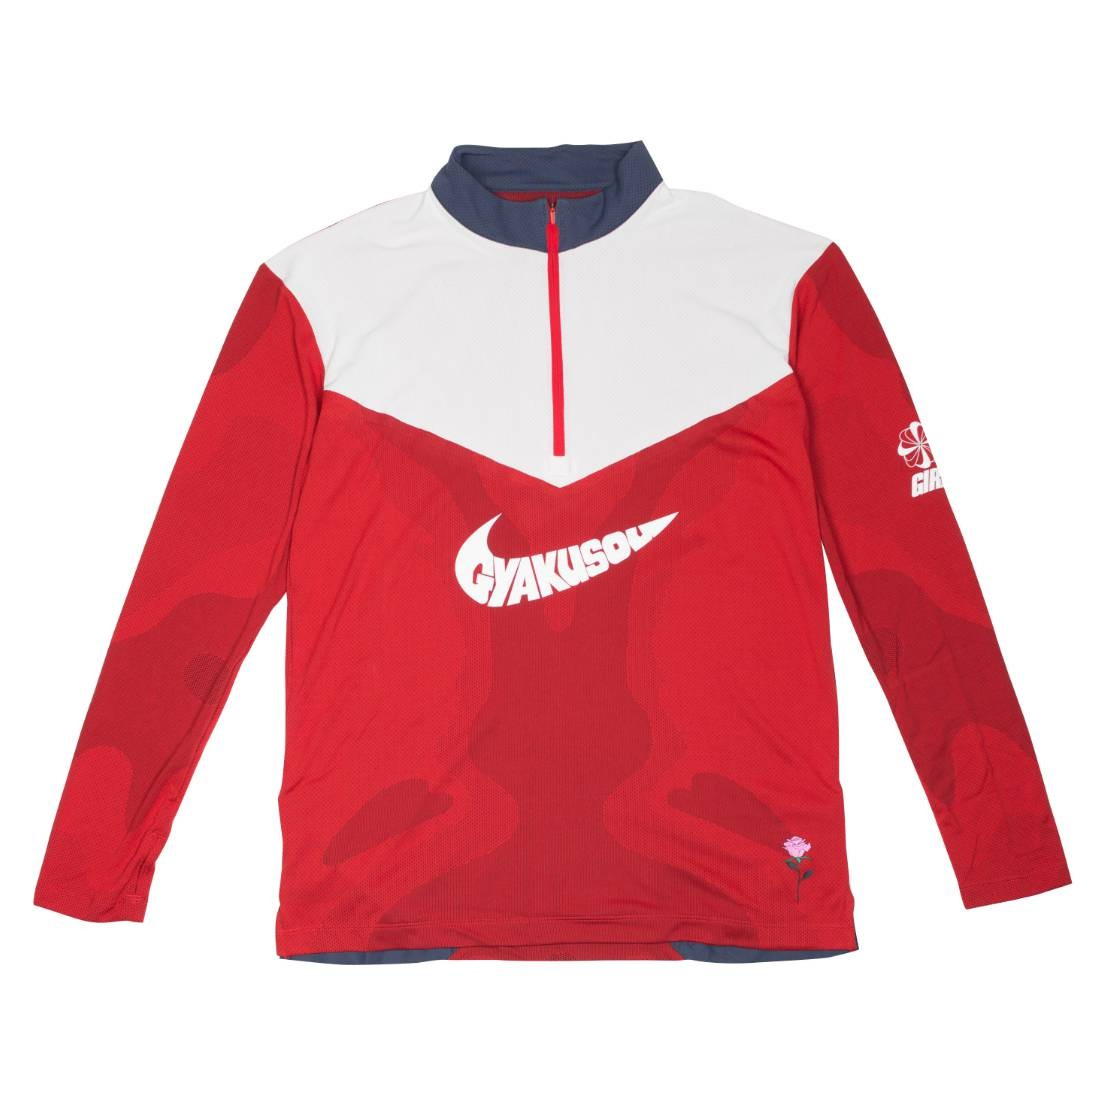 Nike Men Nrg Na Top Long Sleeves Tee Hz - Gyakusou (sport red / thunder blue / sail)